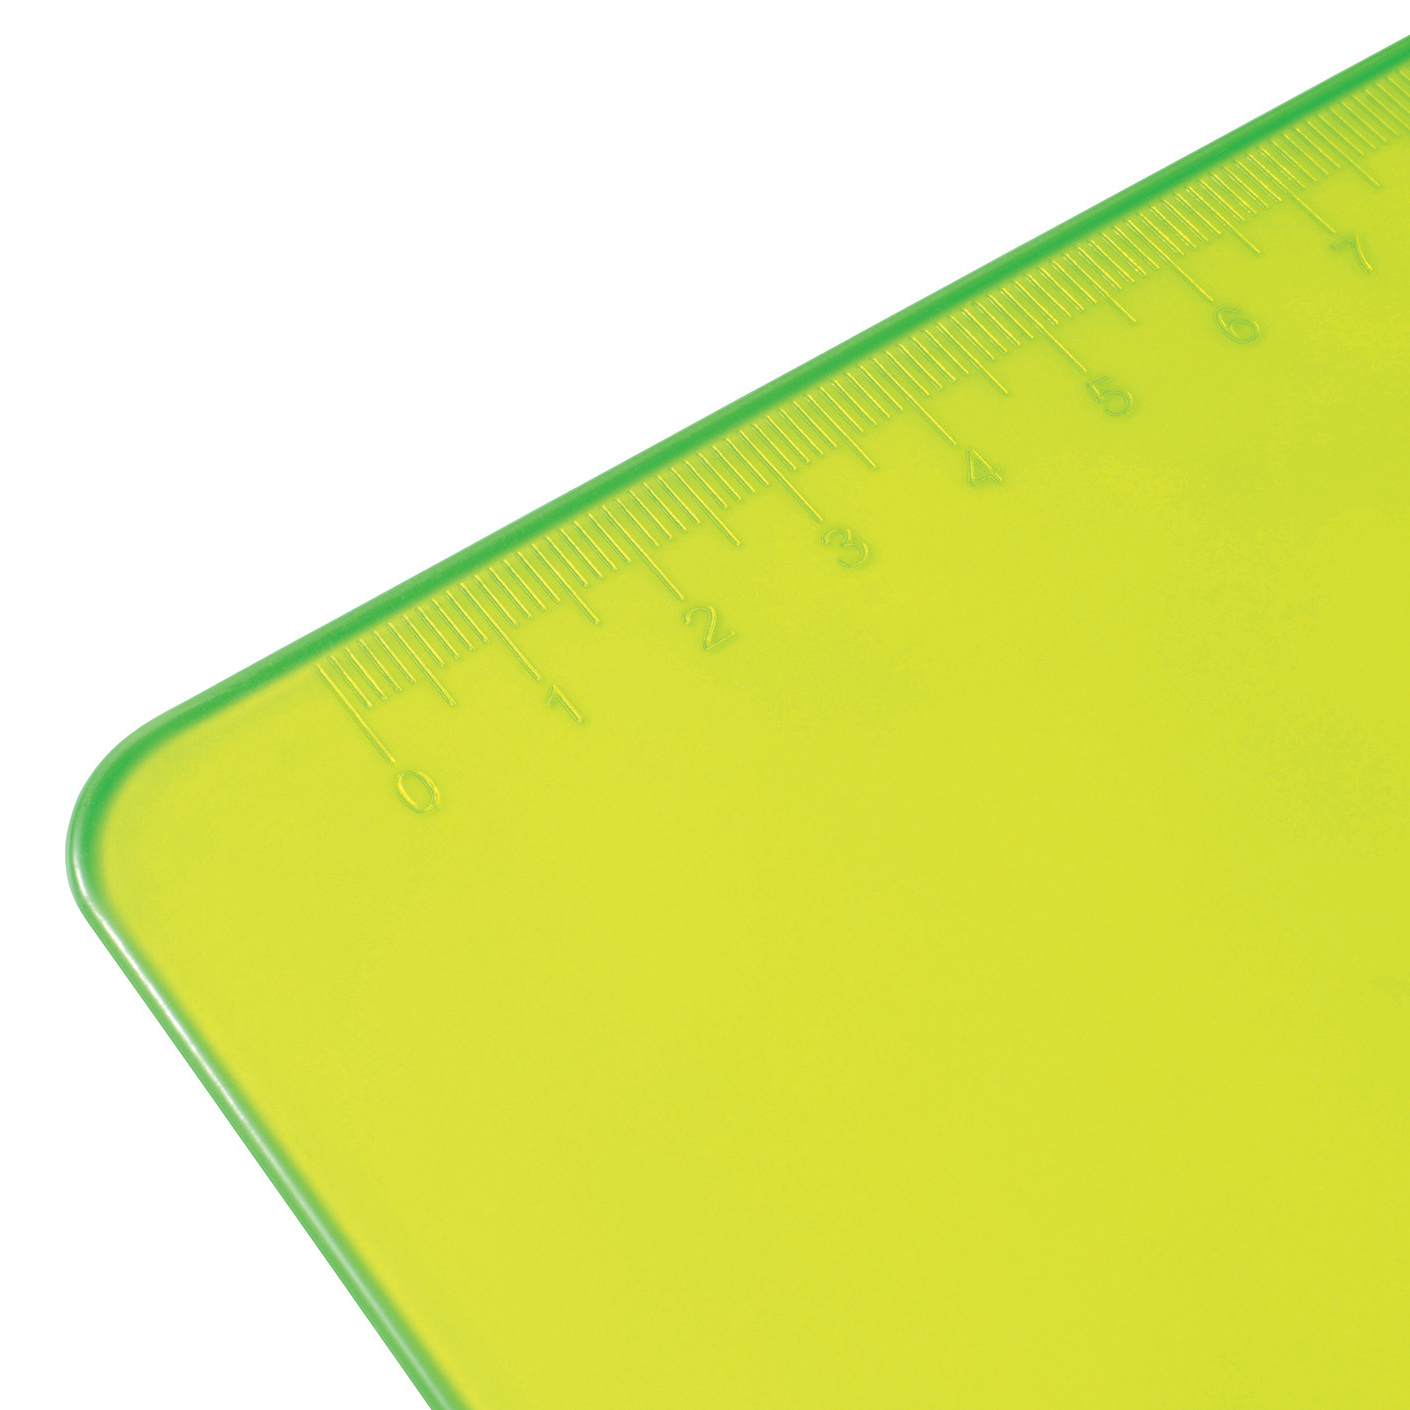 5 Star Office Clipboard Solid Plastic Durable with Rounded Corners A4 Green